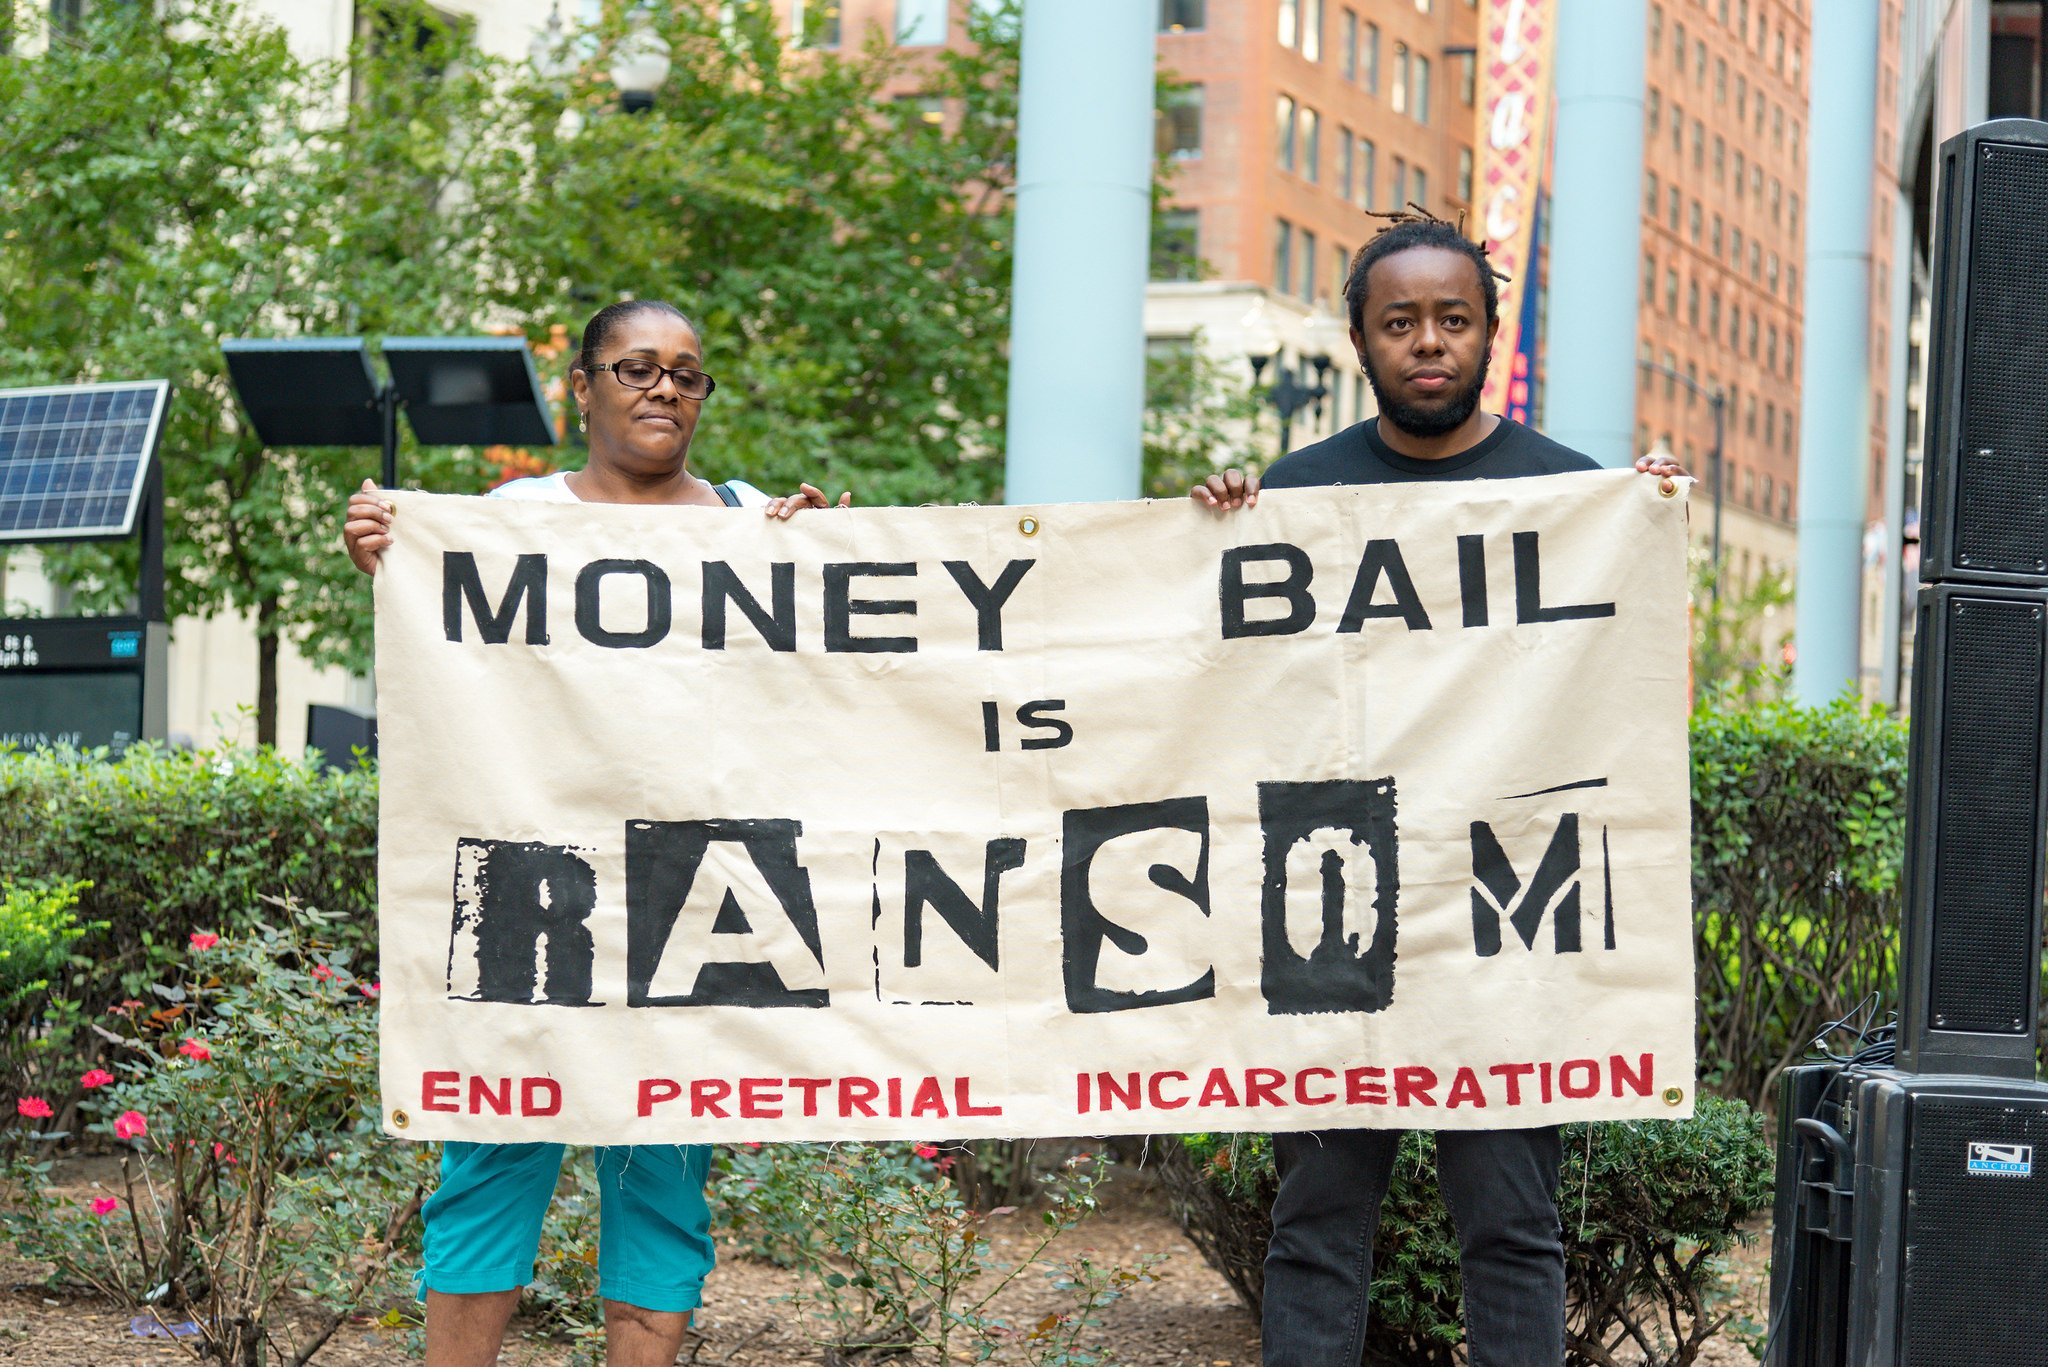 Picturing the End of Money Bail